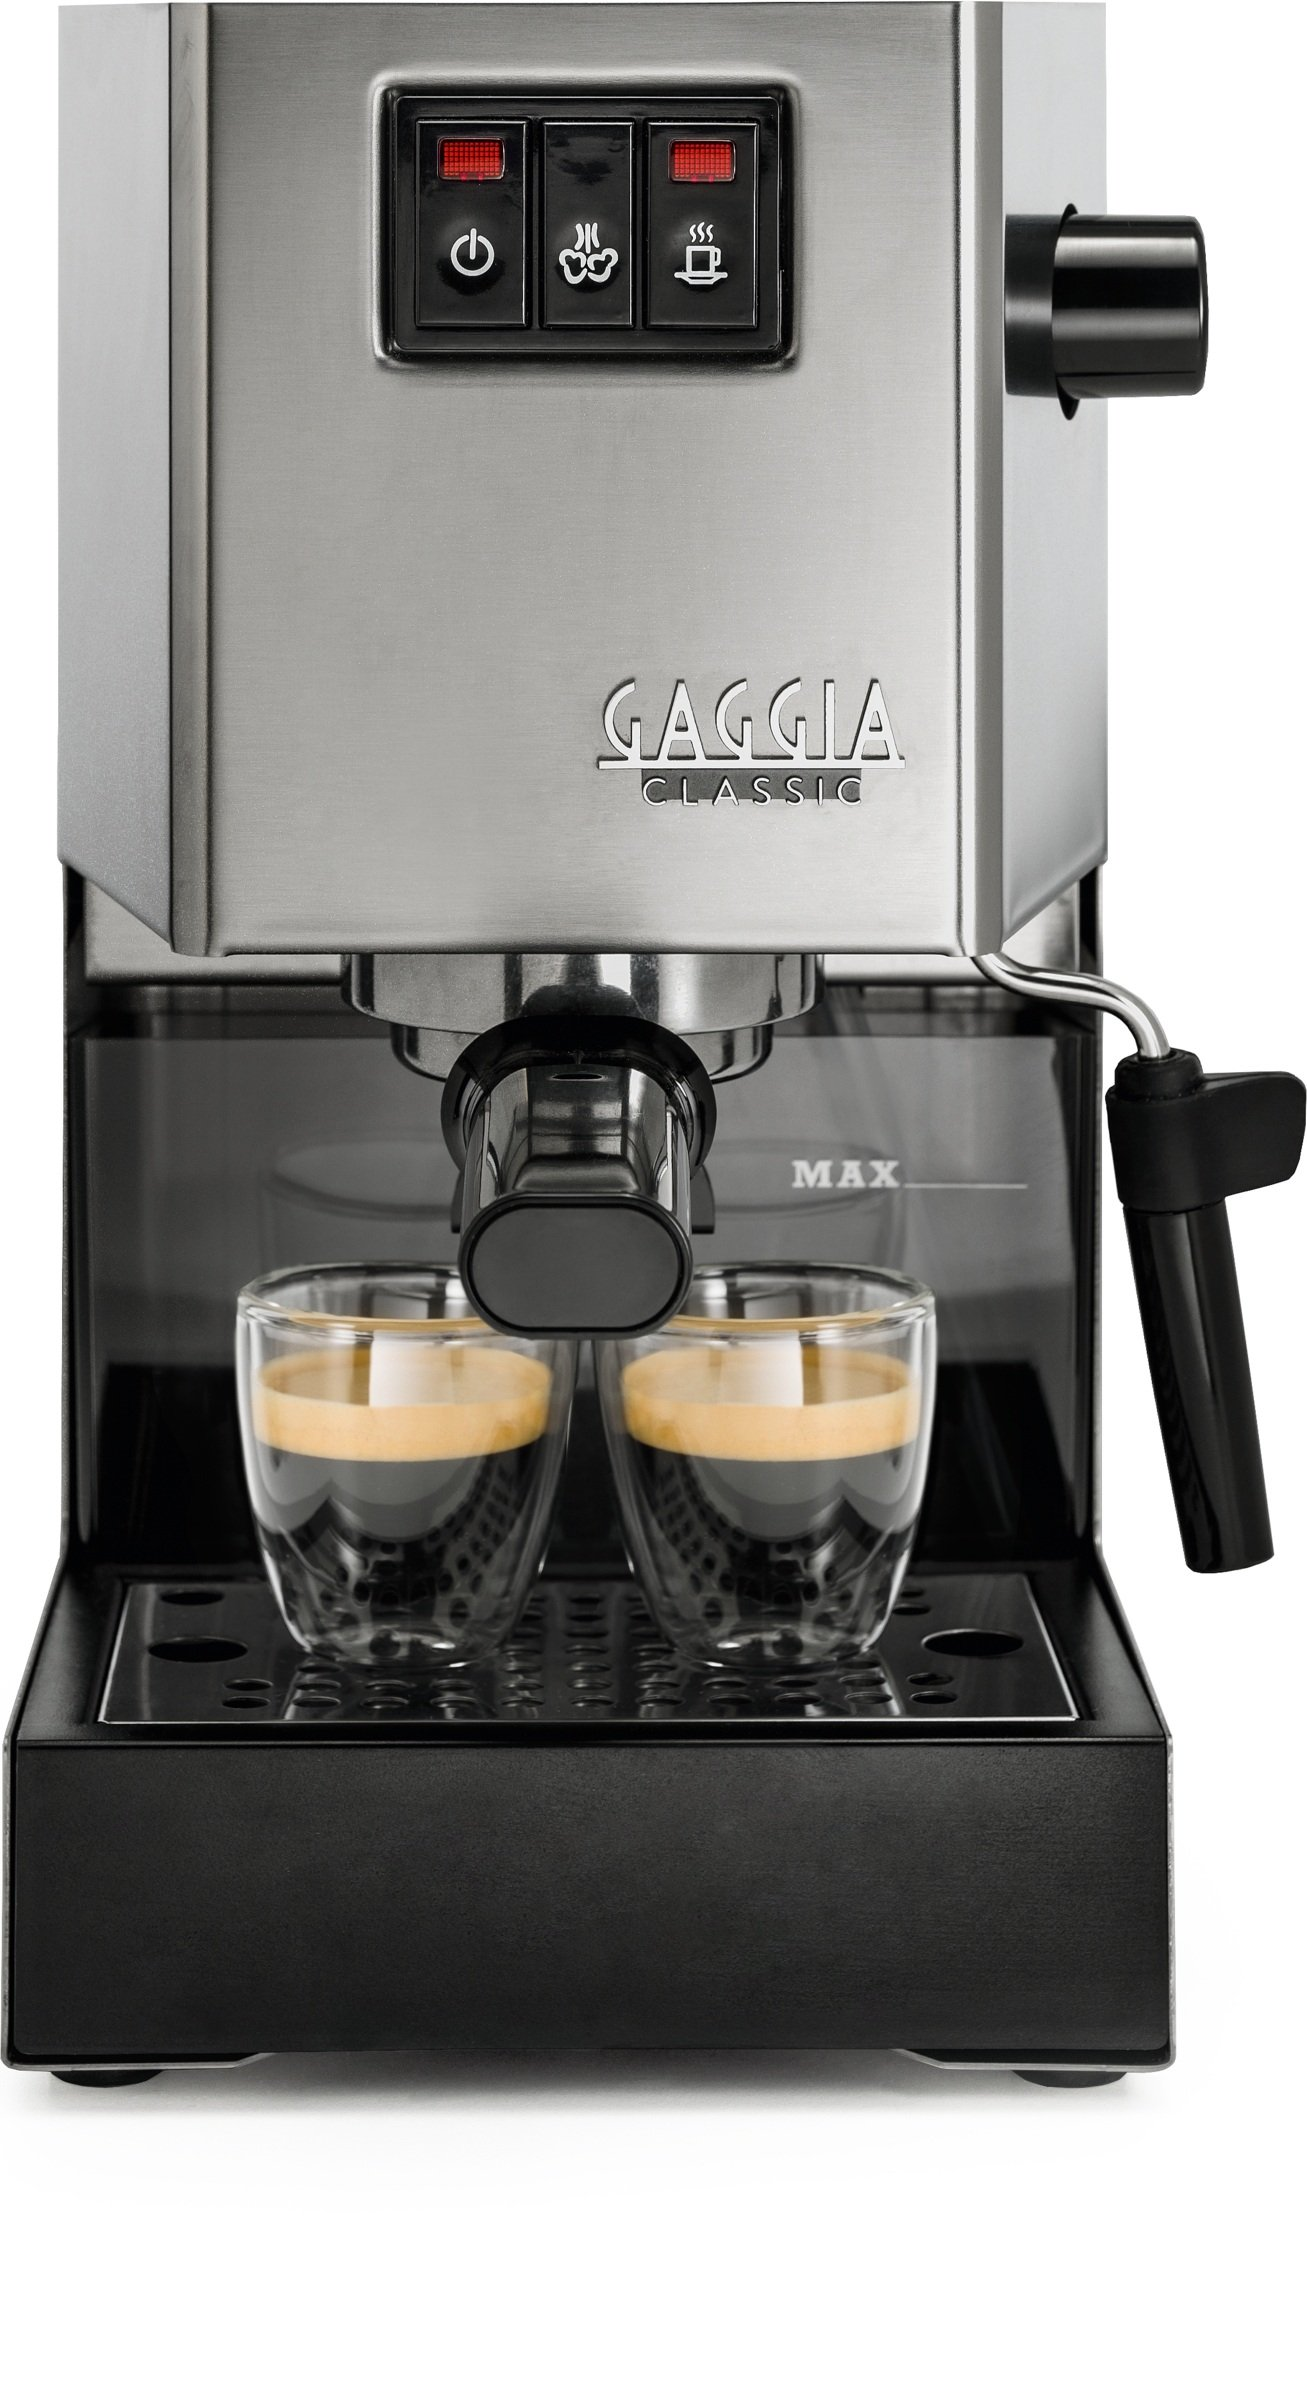 Gaggia-Classic-RI940311-Coffee-machine-new-model-2015